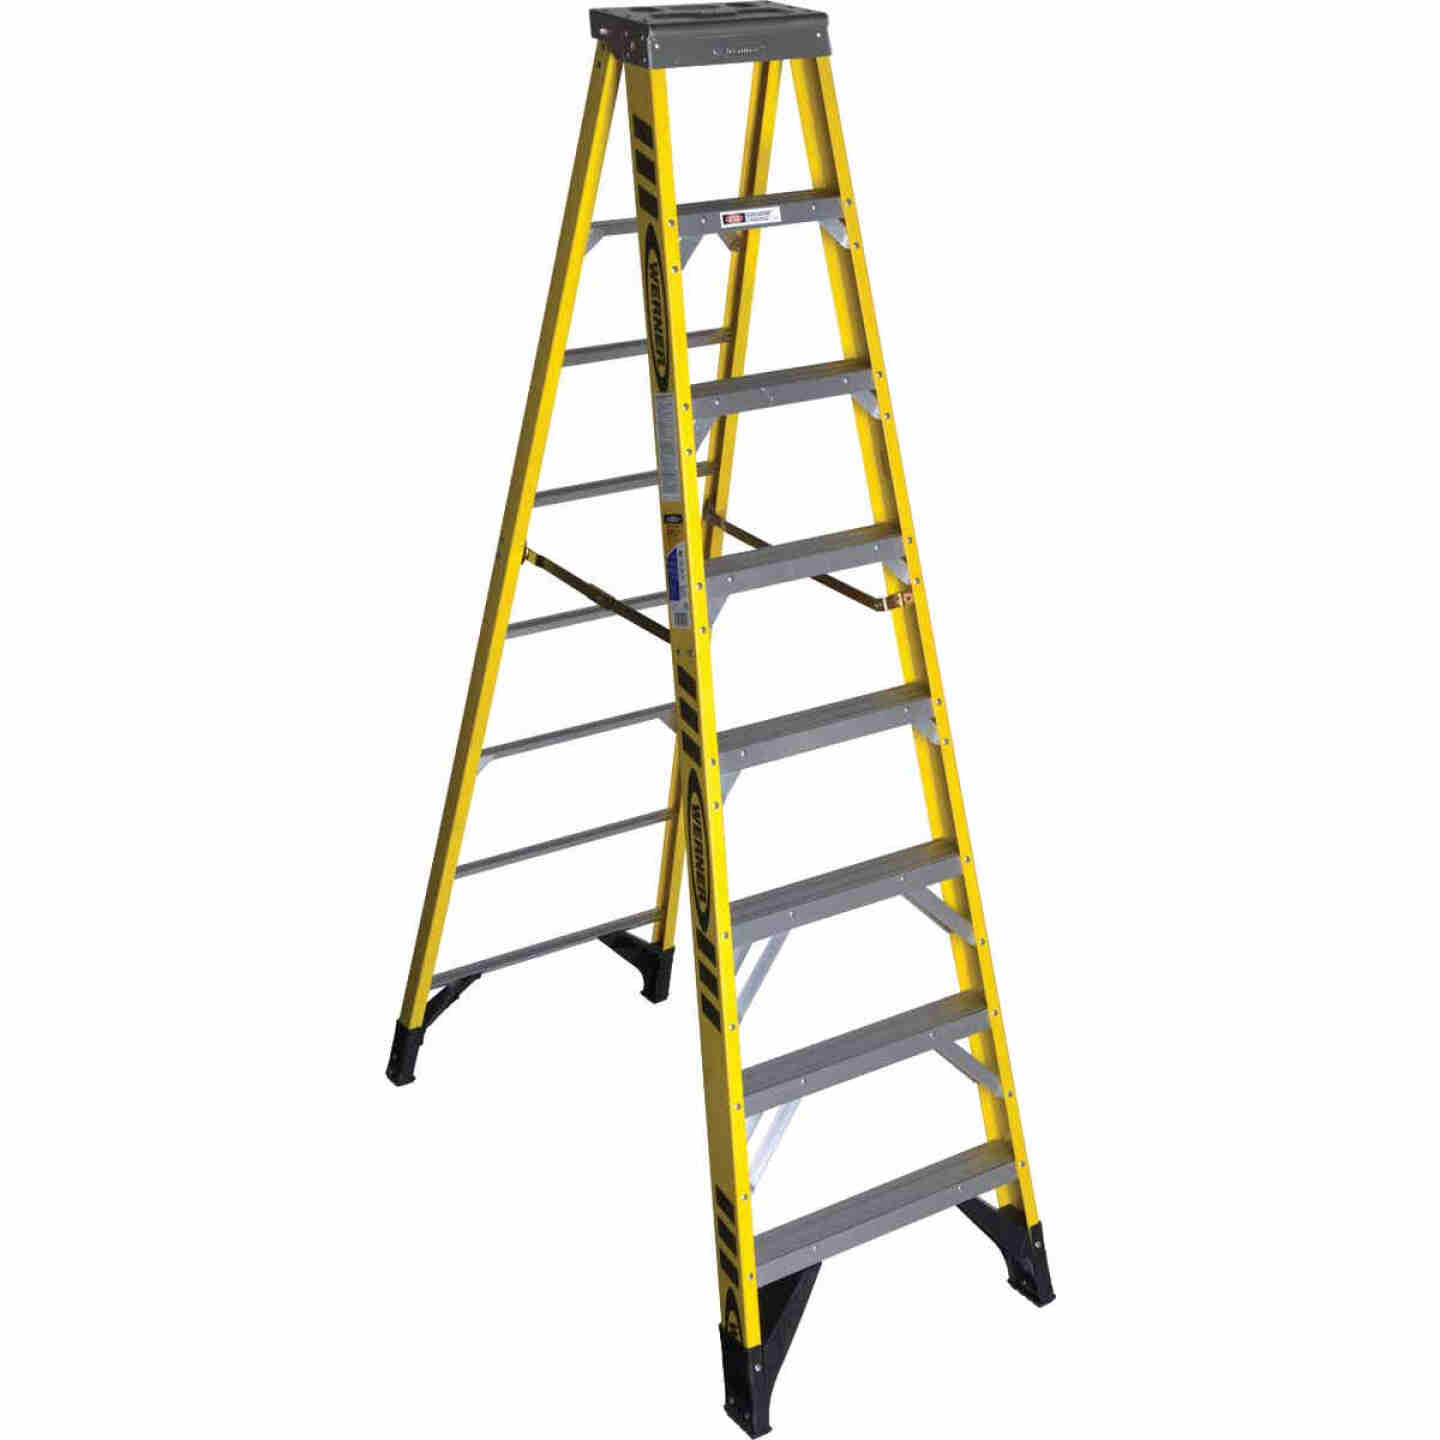 Werner 8 Ft. Fiberglass Step Ladder with 375 Lb. Load Capacity Type IAA Ladder Rating Image 1